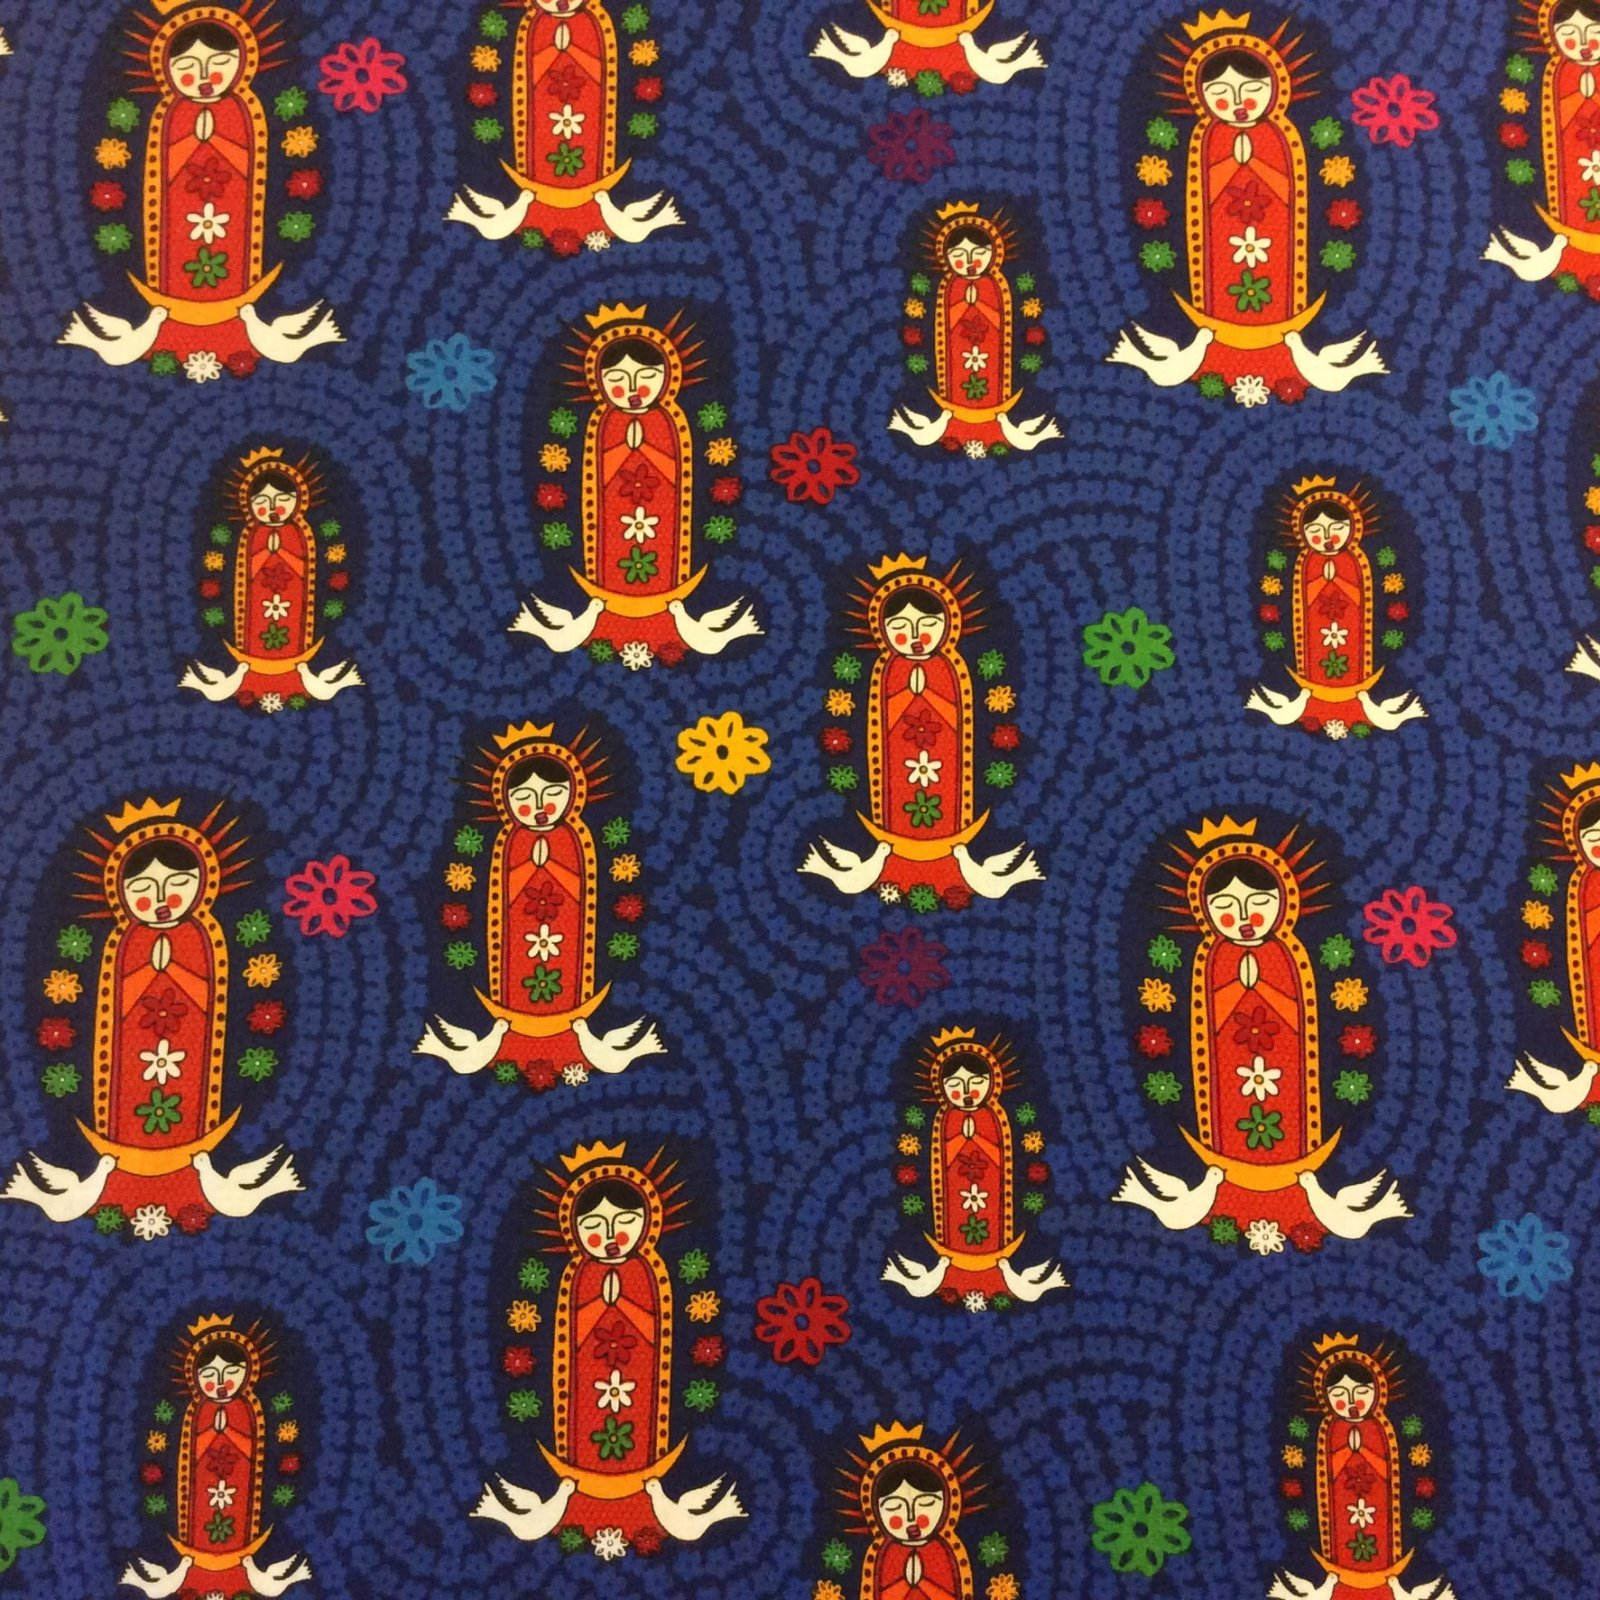 Our Lady of Guadalupe Virgin Mary Cotton Quilt Fabric  FF78